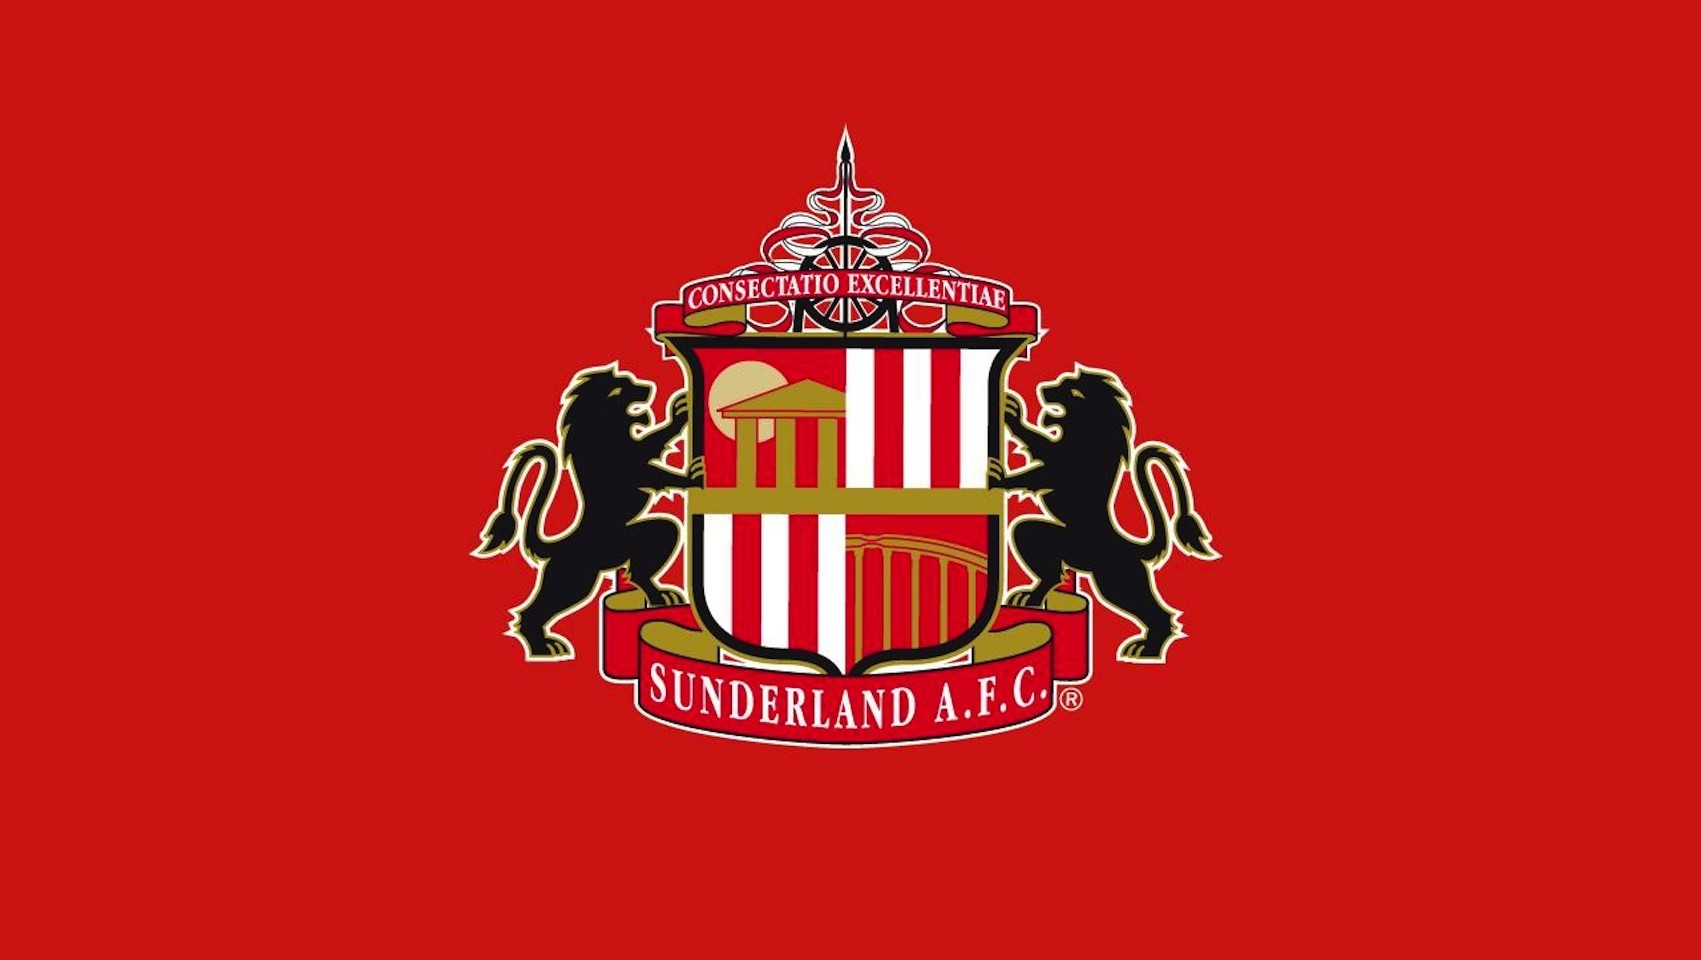 Sunderland Paper Reassigns Reporter Who Facebooked Nasty Things about Team Six Years Ago